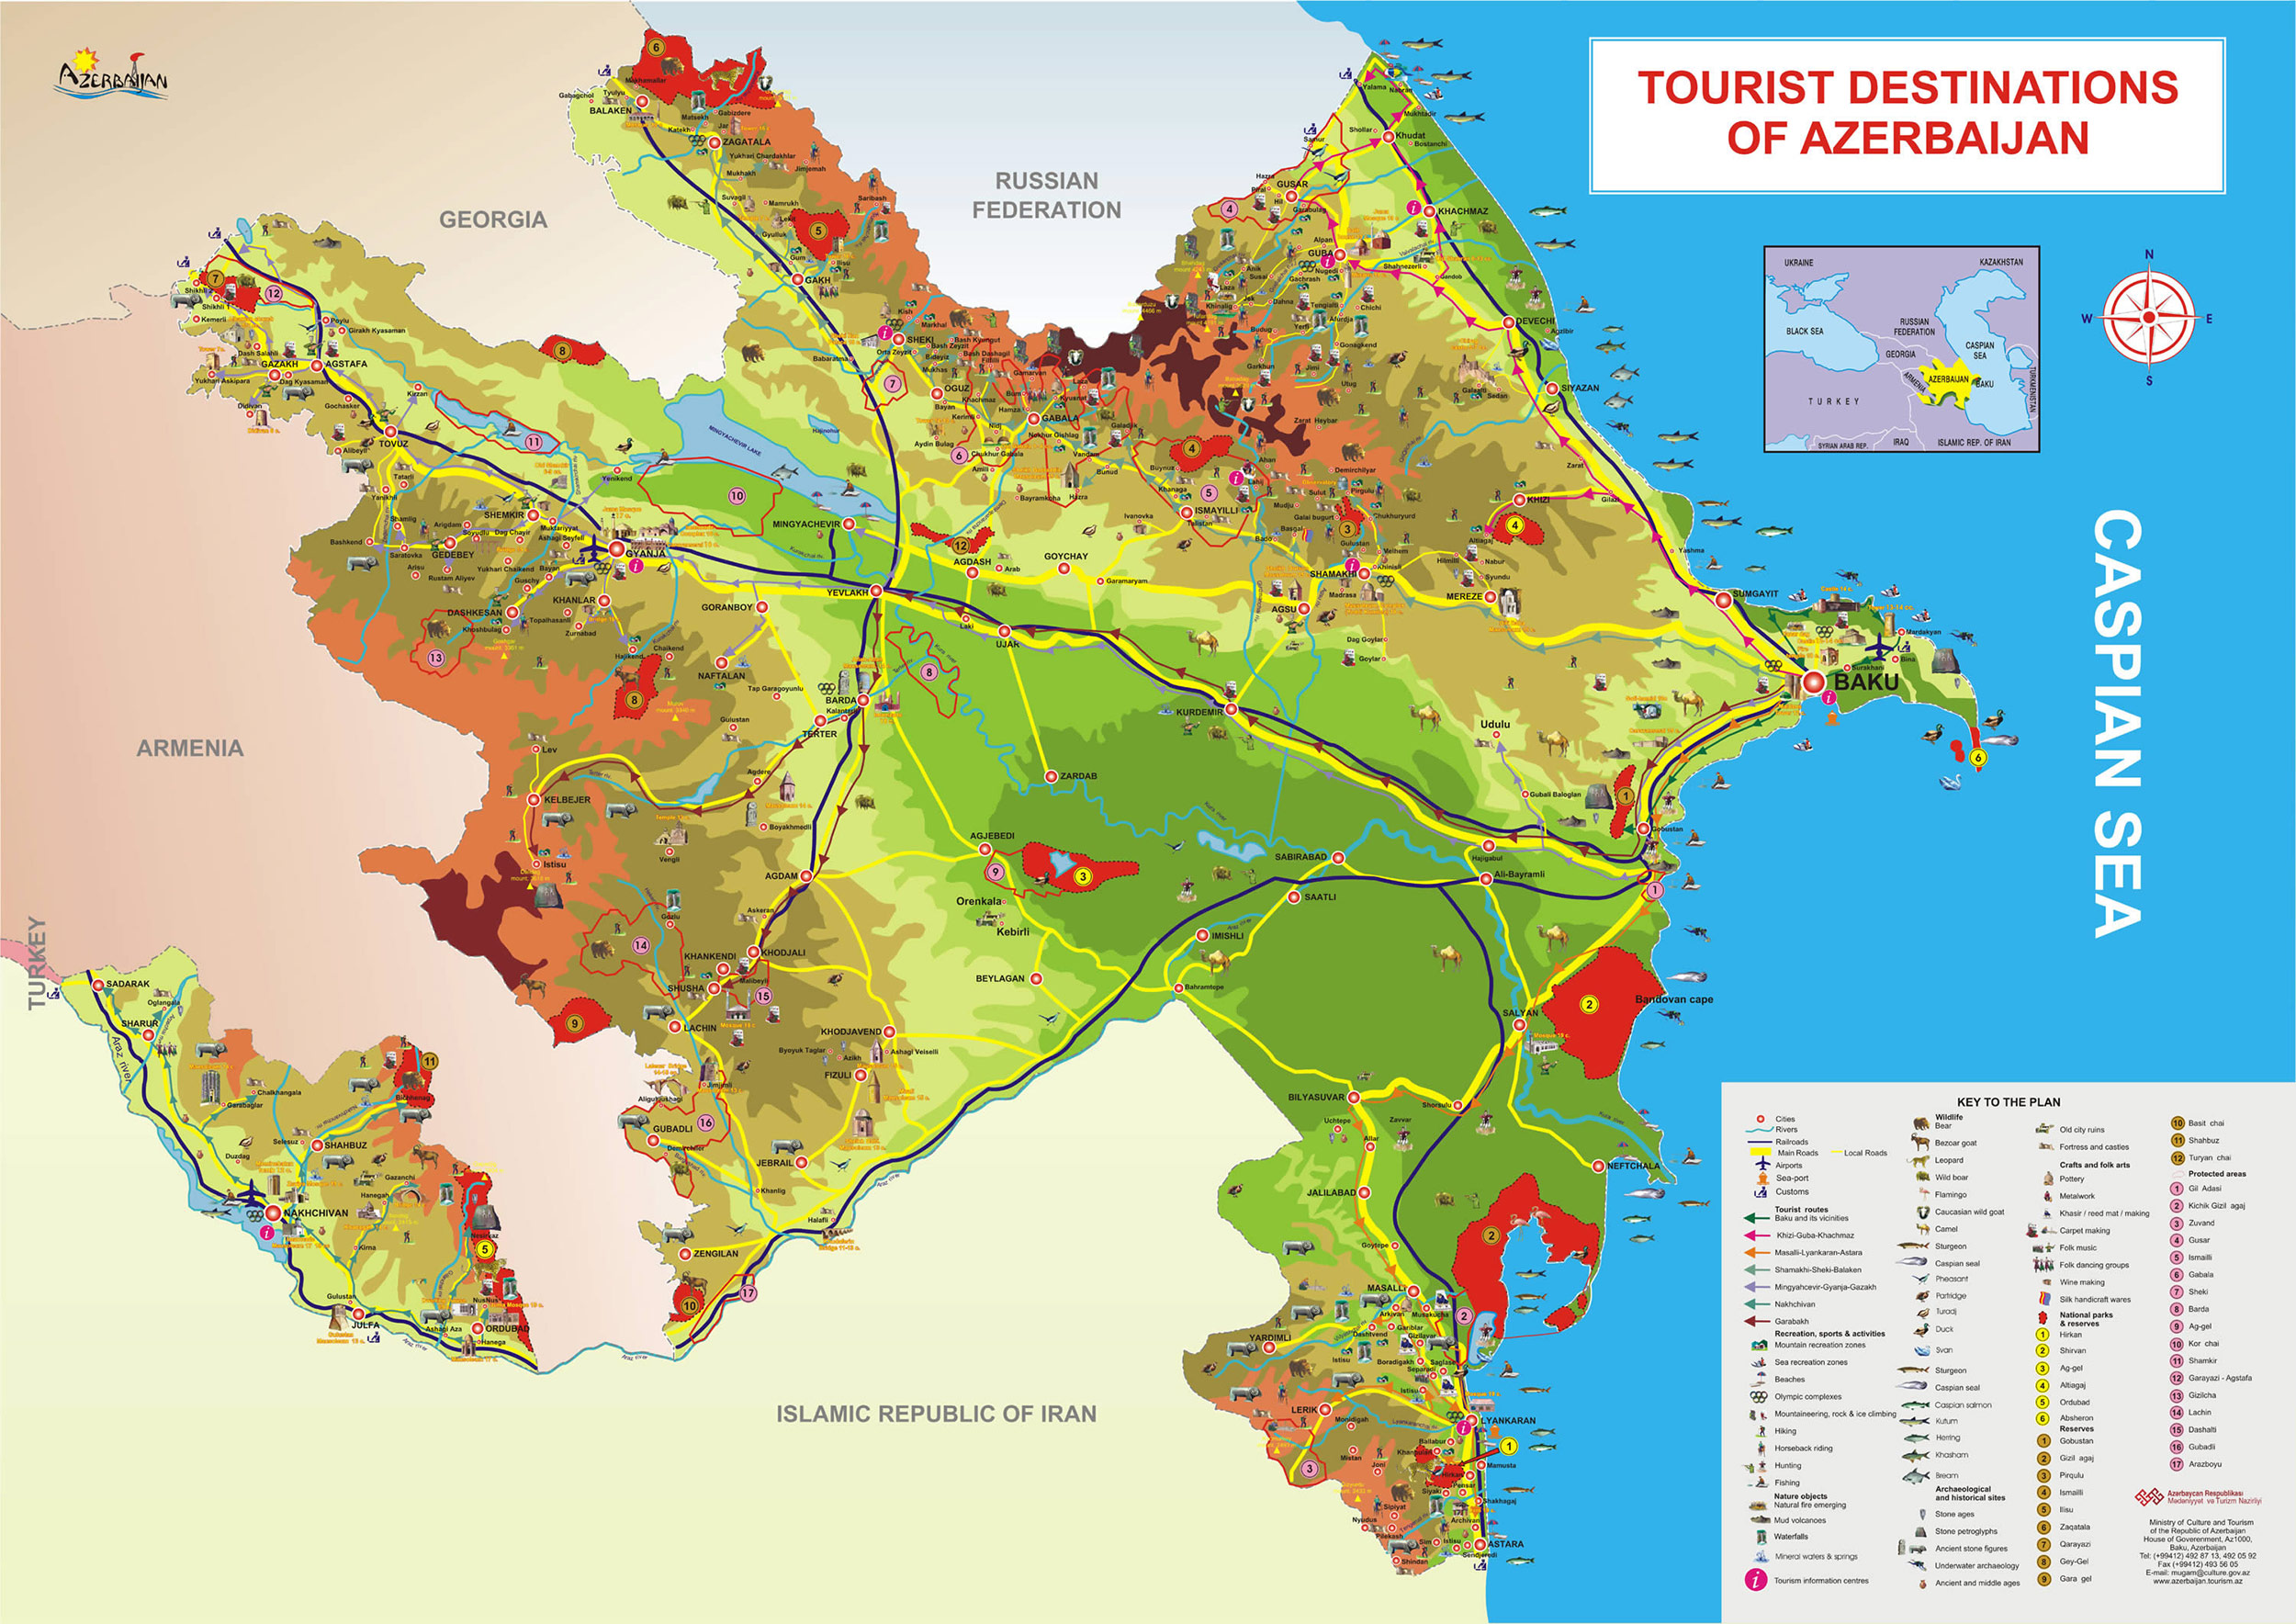 Tourist Destinations Of Azerbaijan large map